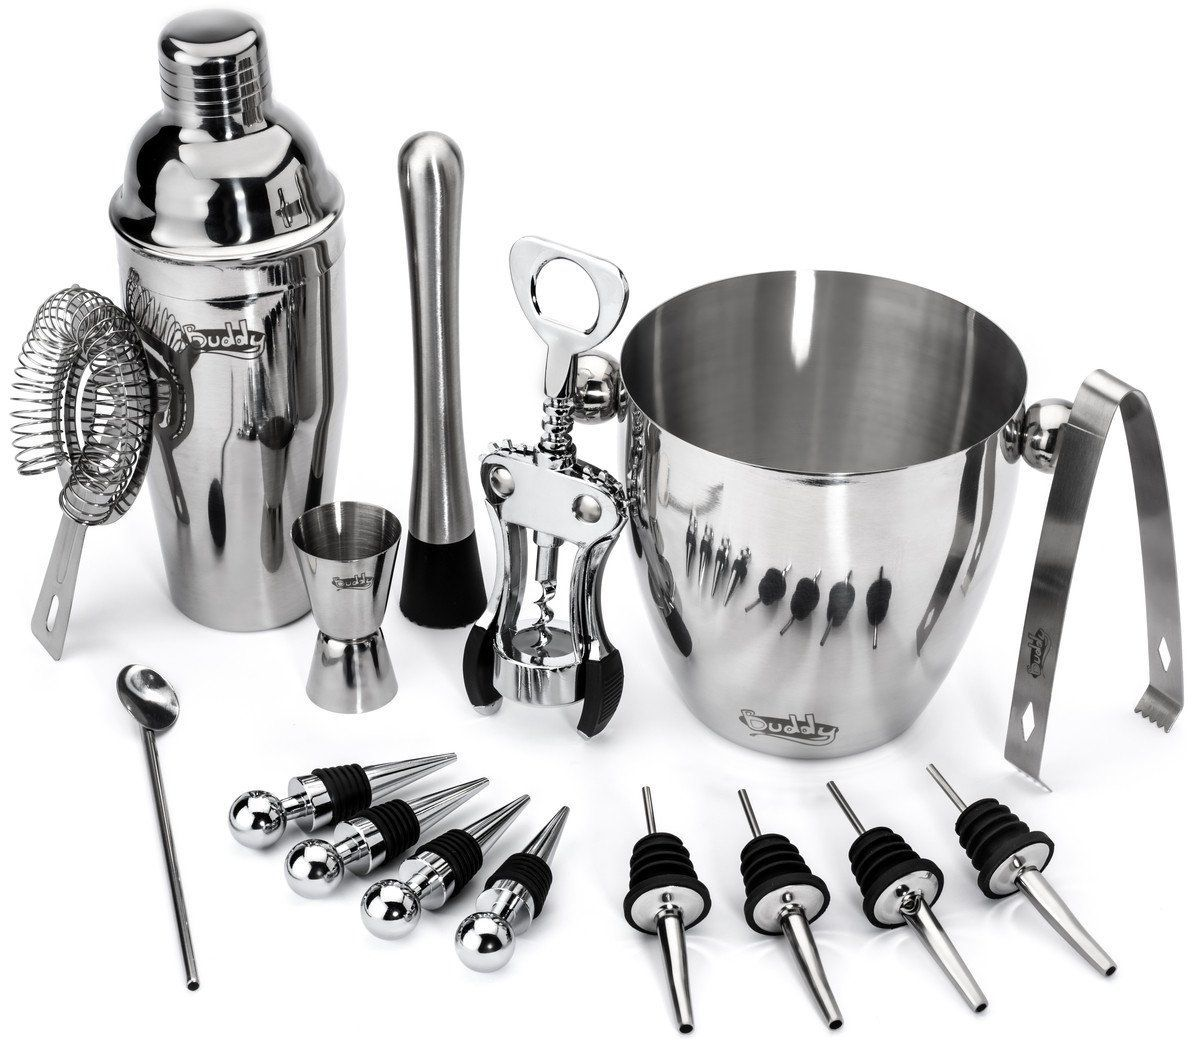 Professional Bartender Kit Cocktail Shaker Bar Set Includes Tools /& Accessories